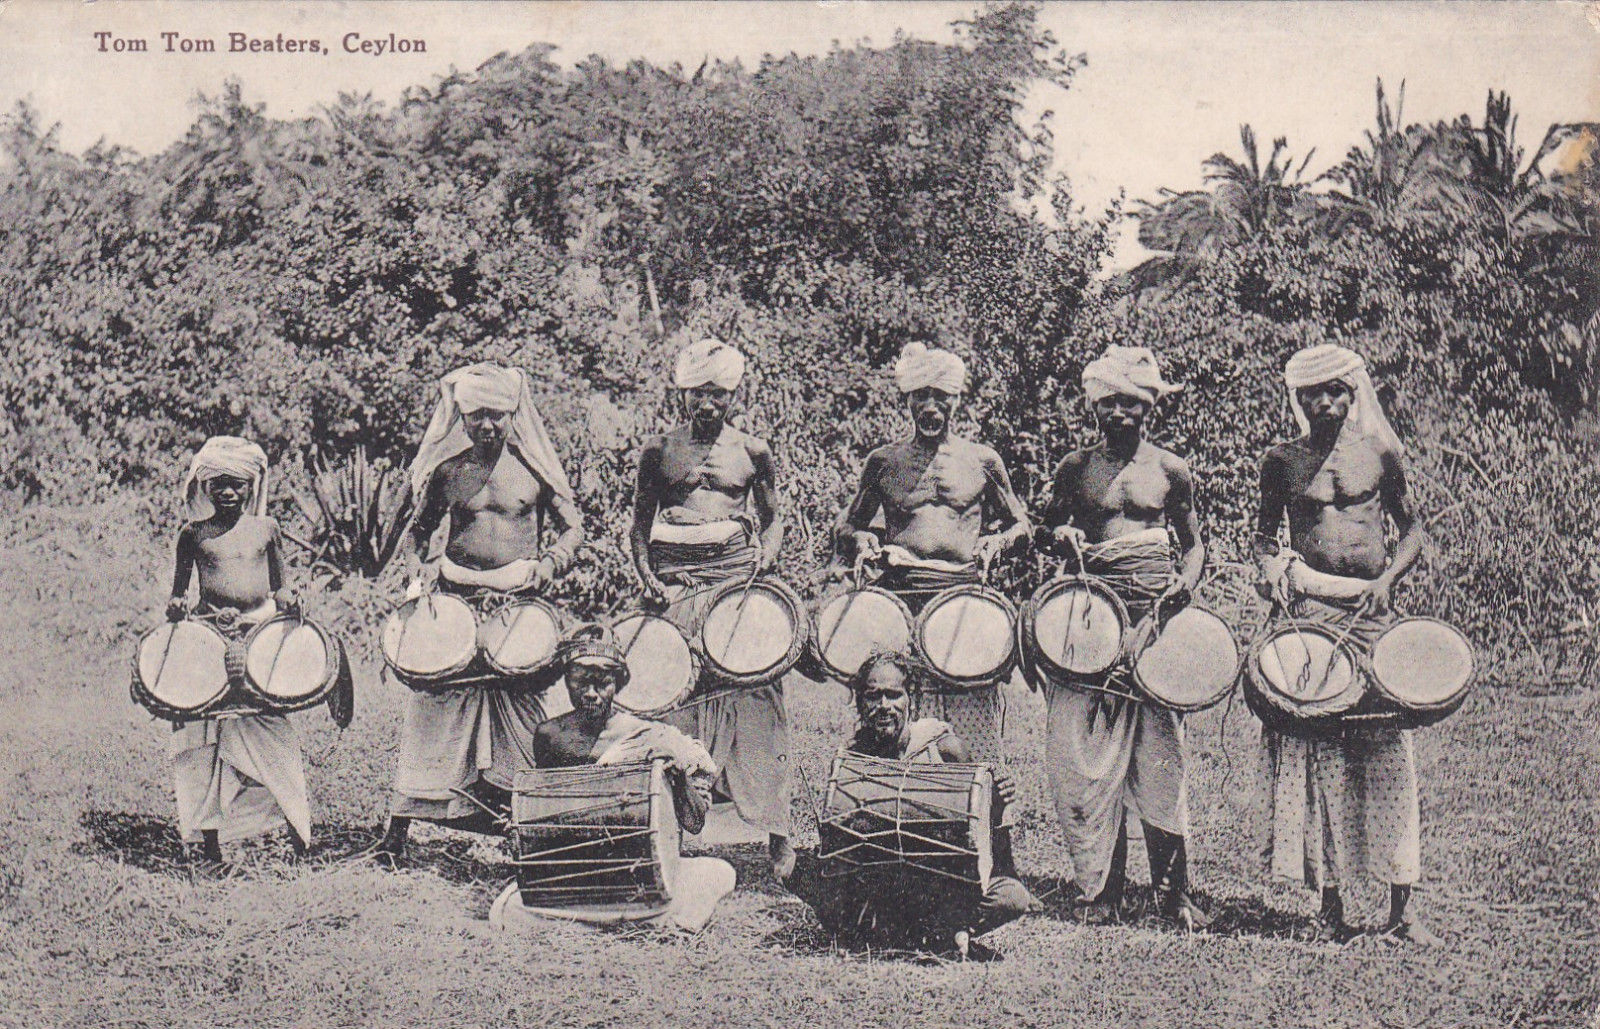 Group of Sri Lankan drummers pictured